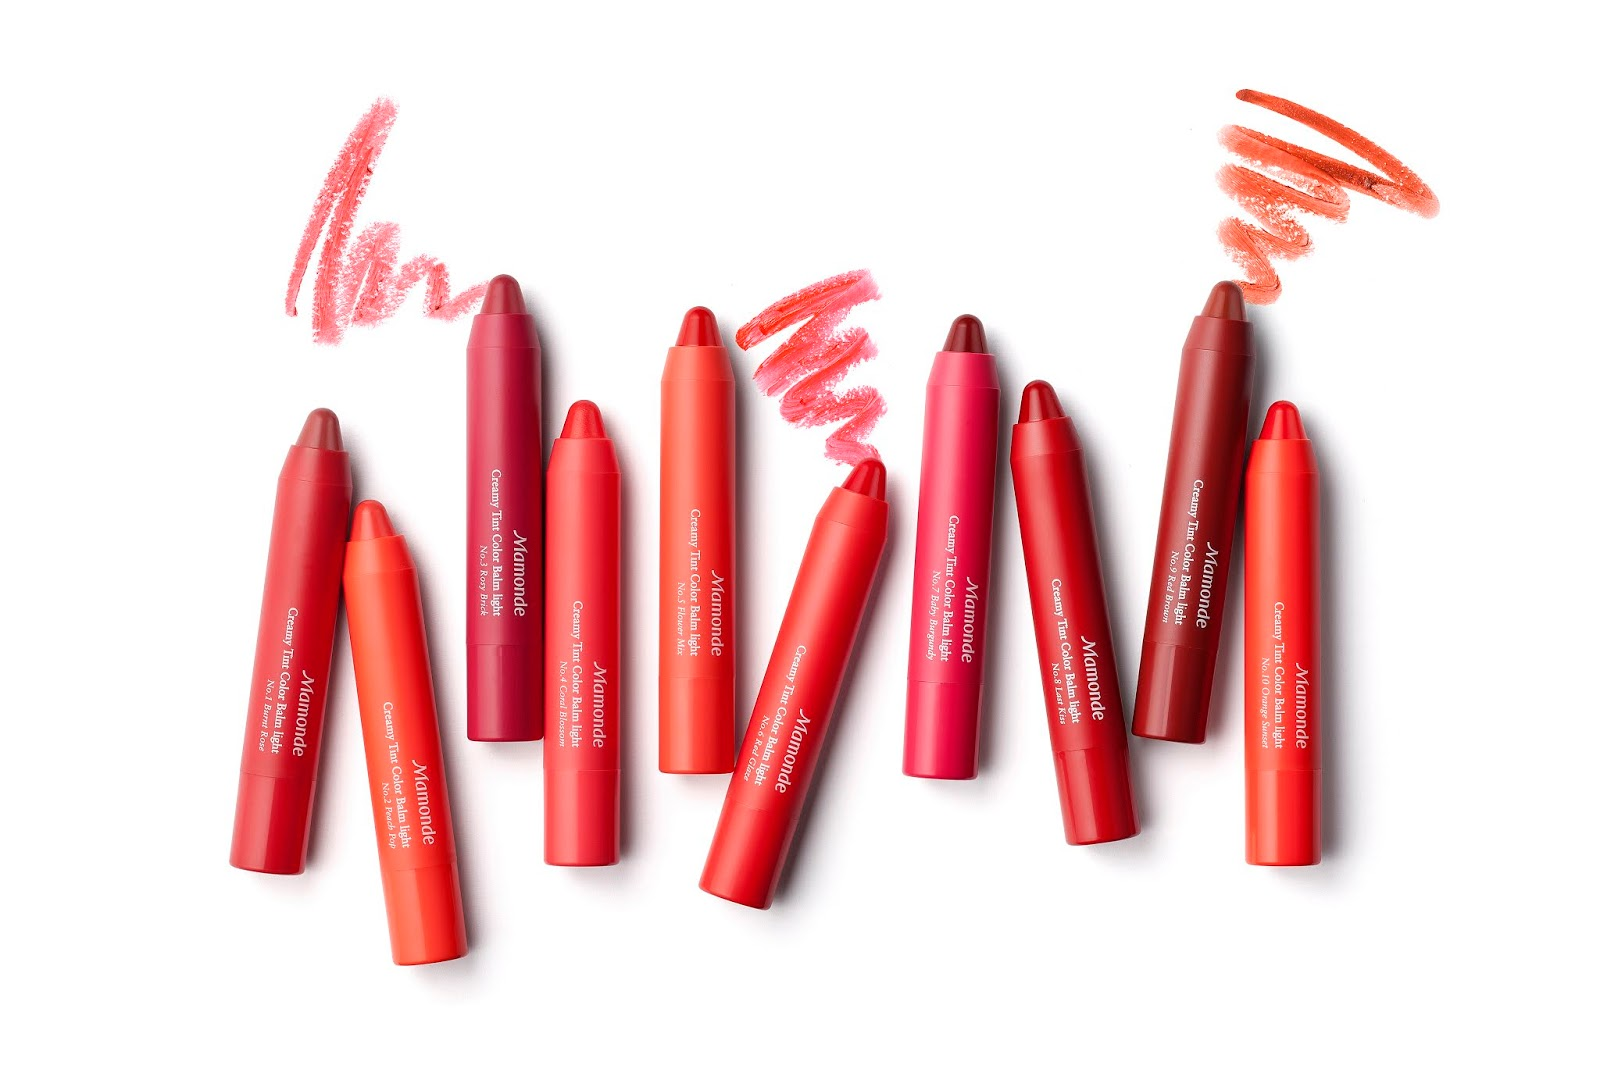 [Beauty Review] Colour Your Lips with Mamonde's MLBB Fresh Floral Shades